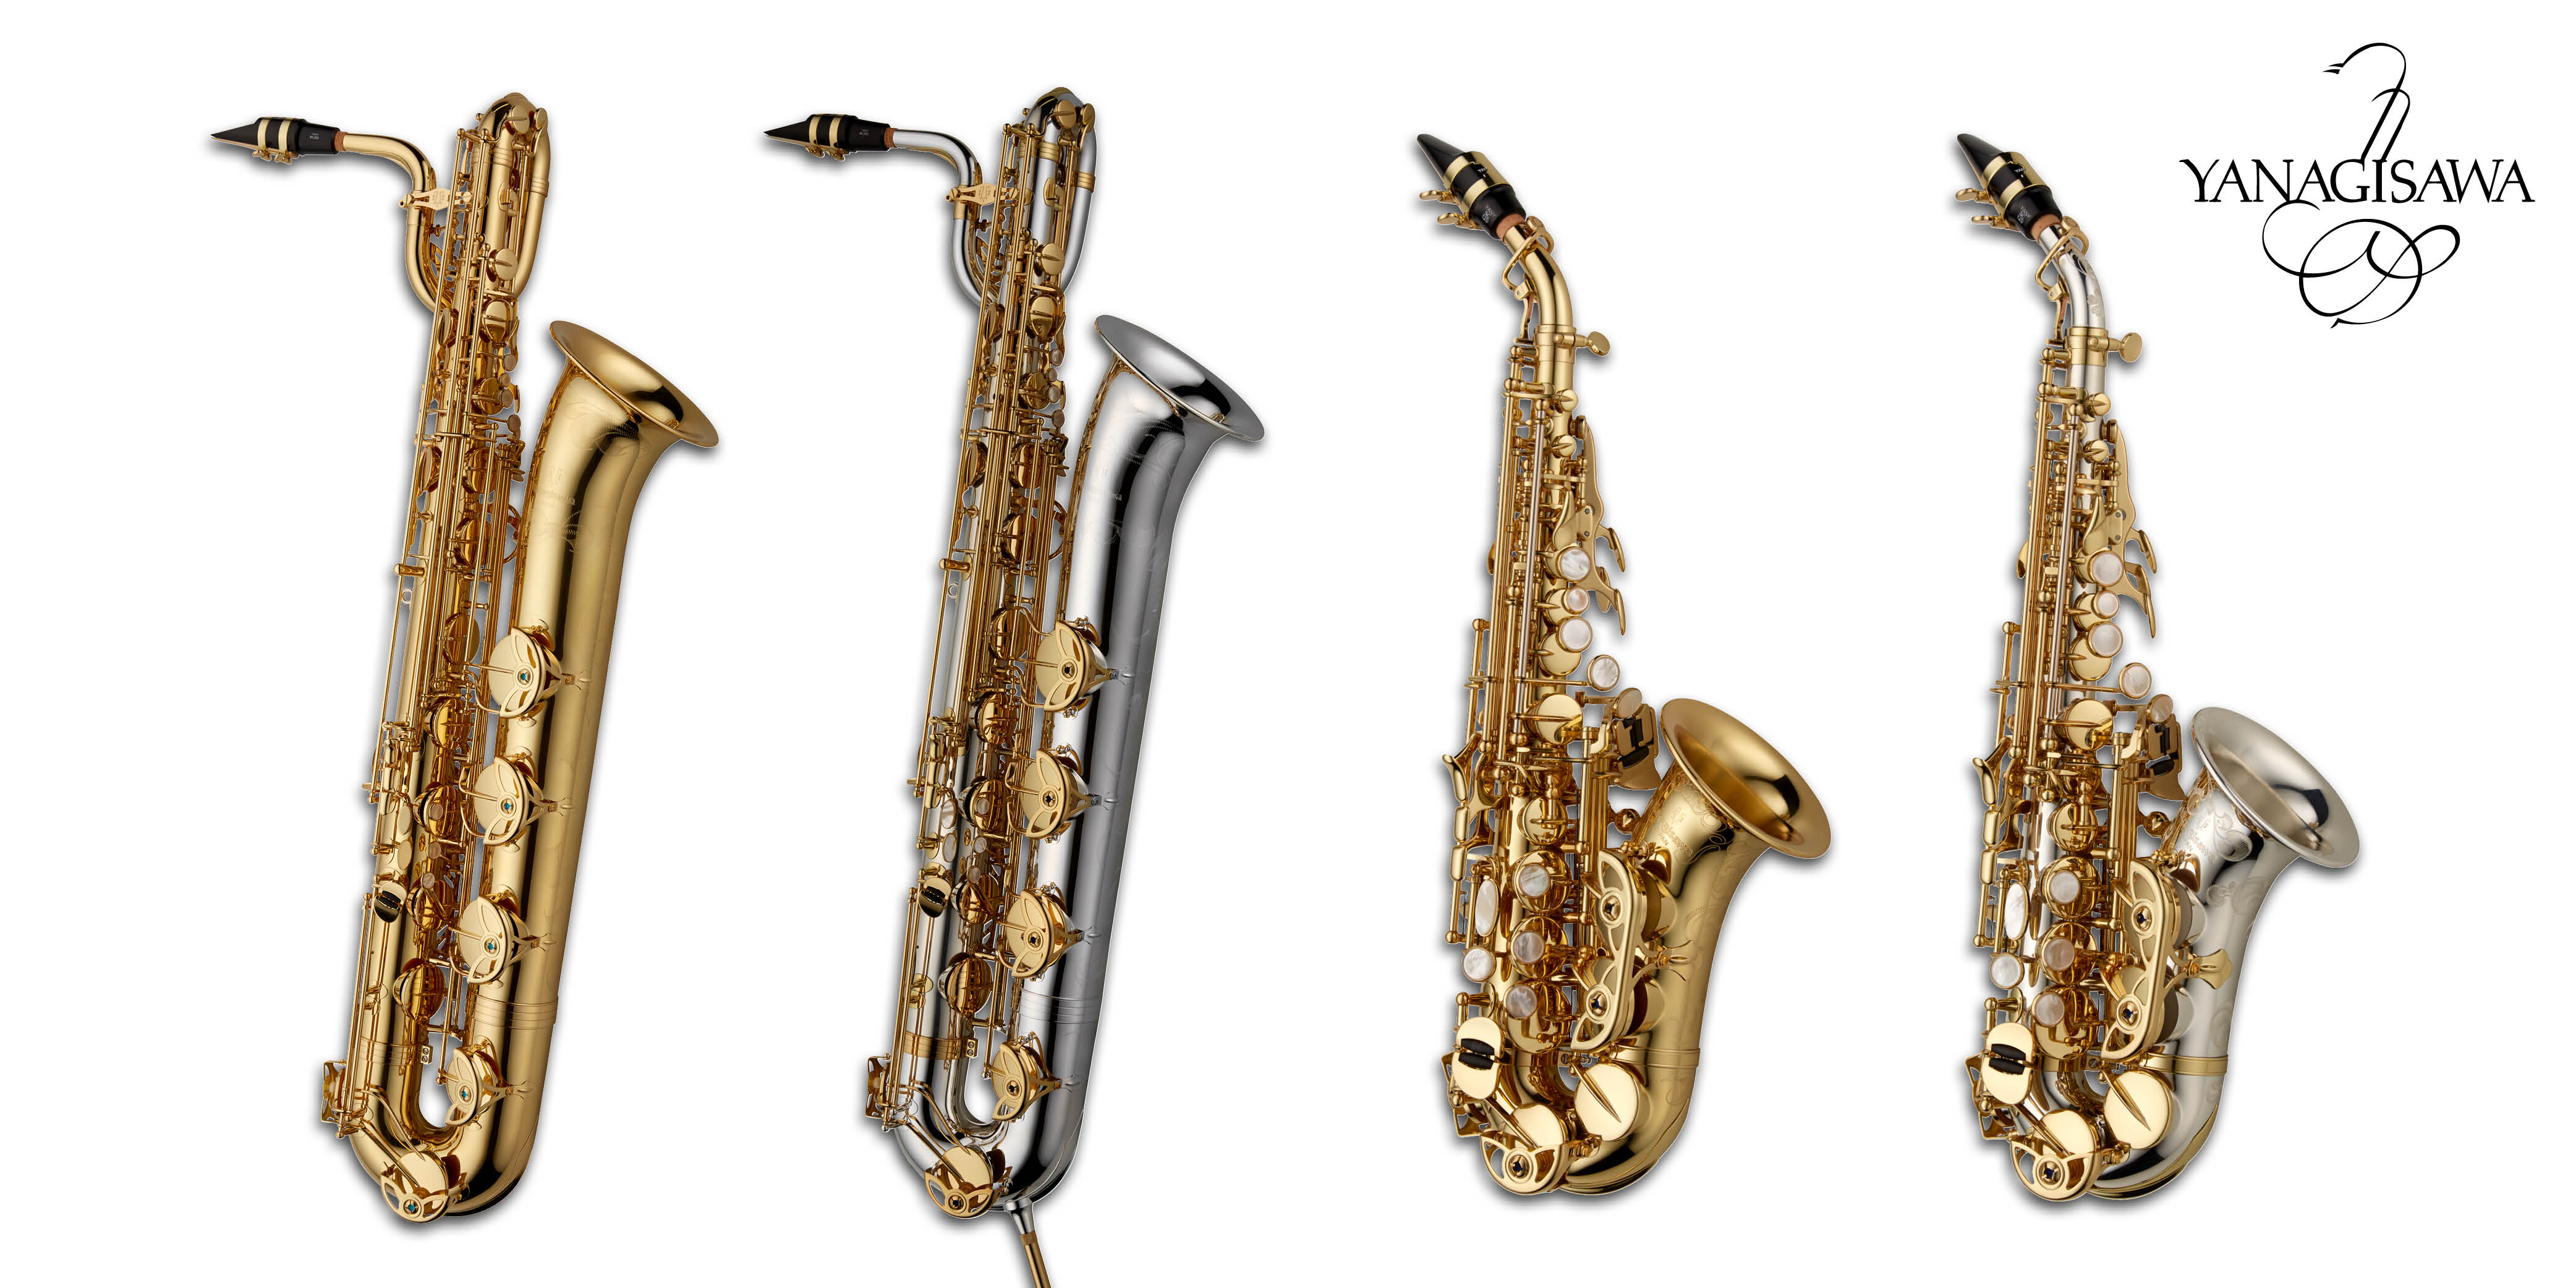 Yanagisawa Saxophones launch new WO Series Baritone and Curved Soprano instruments in the UK.